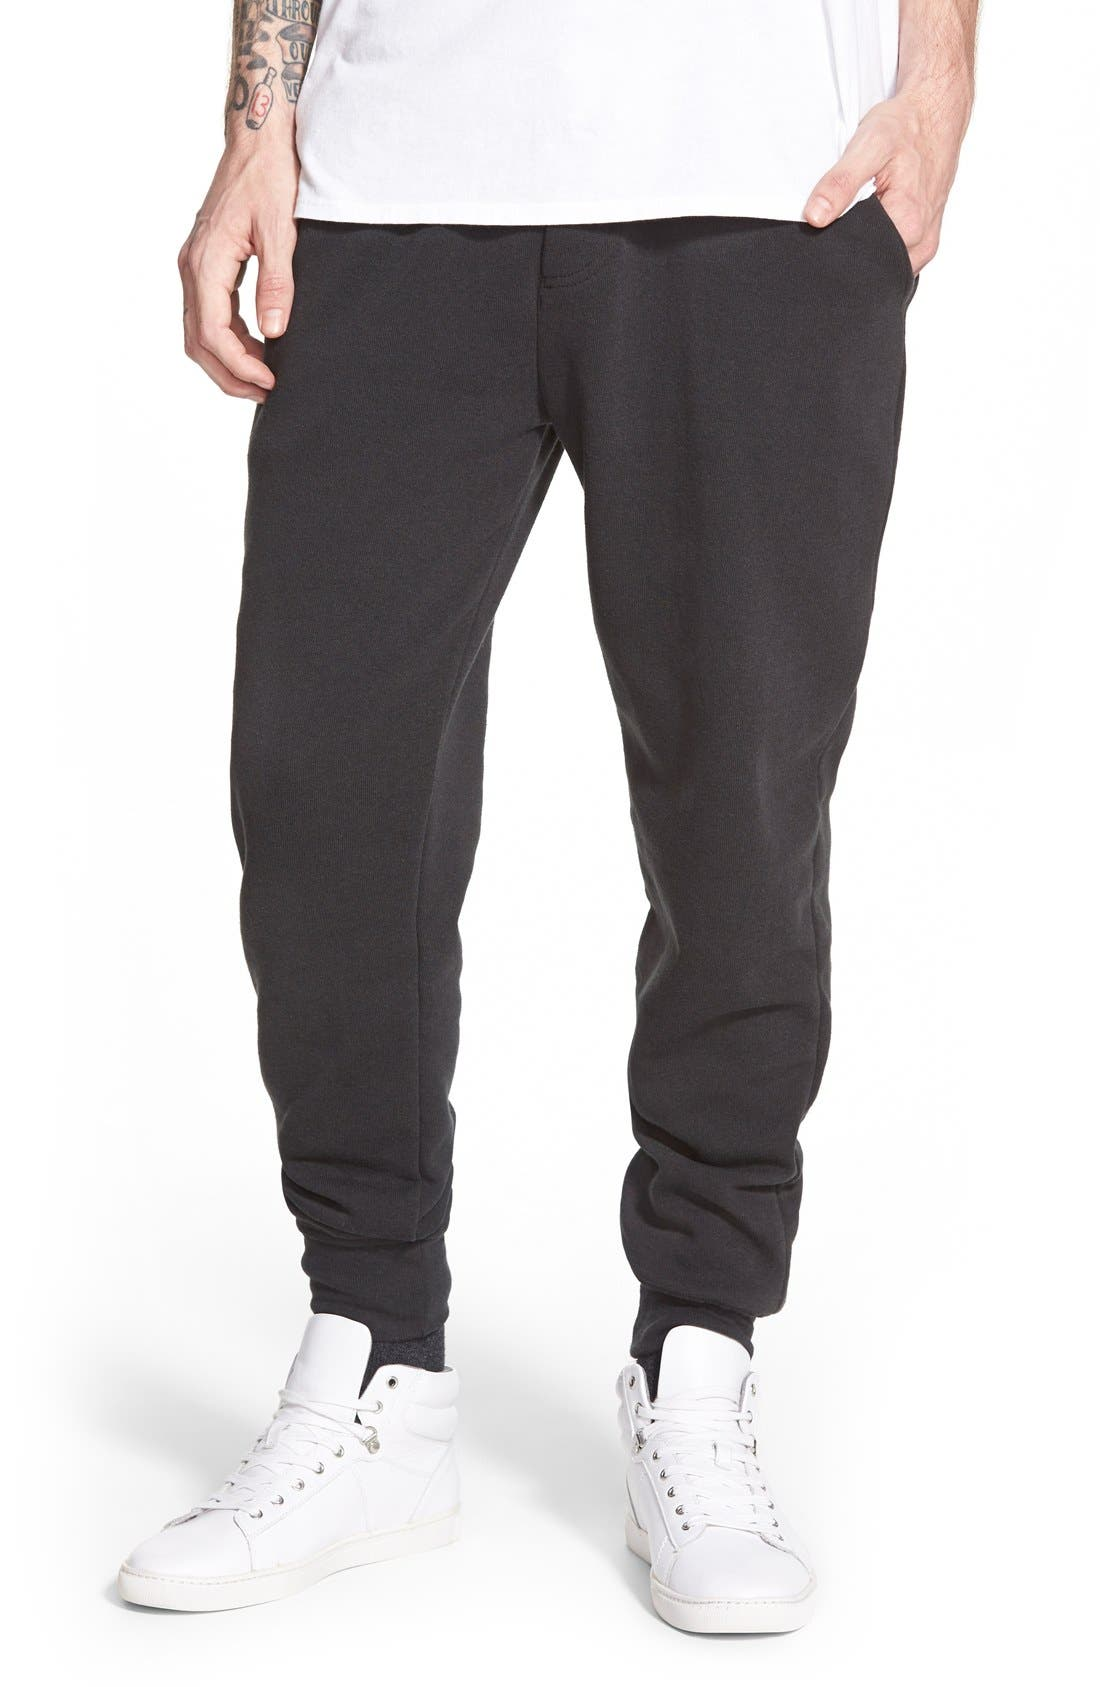 'Dodgeball' Eco Fleece Sweatpants,                             Main thumbnail 1, color,